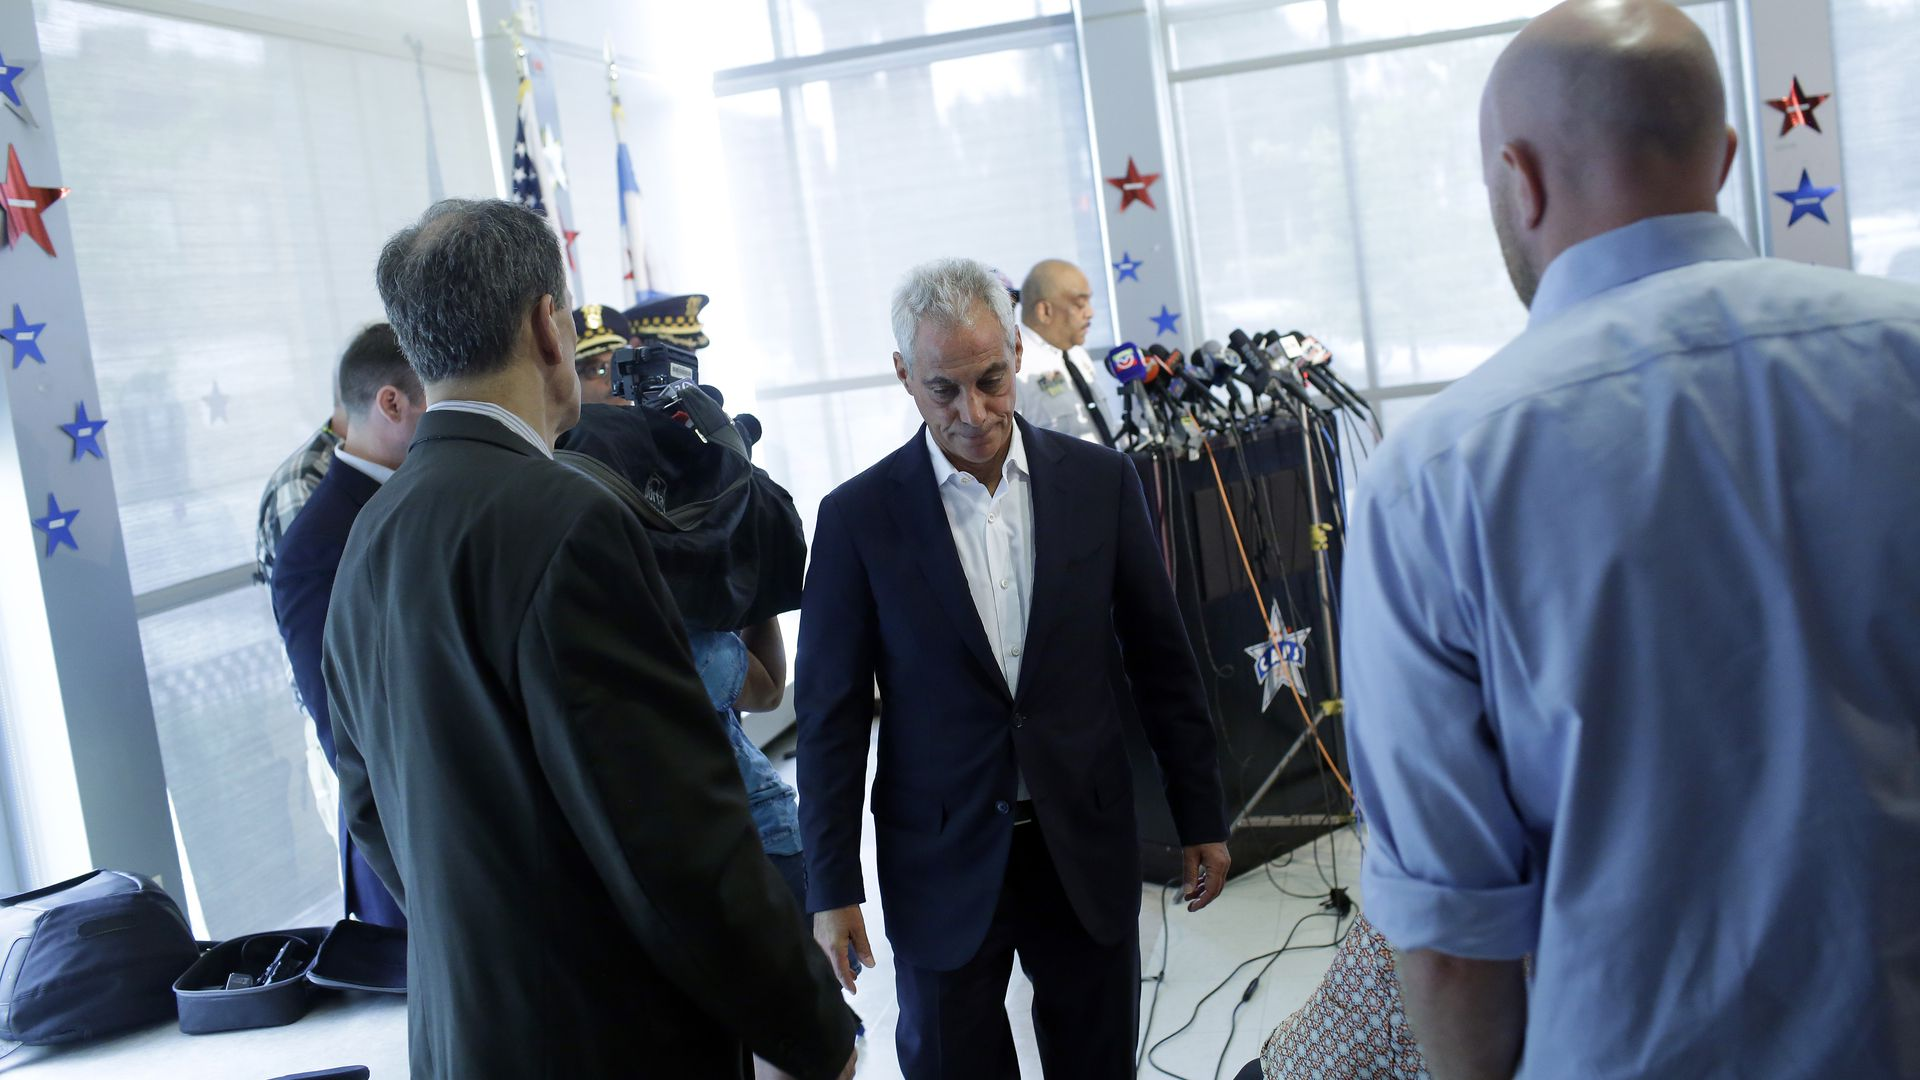 Rahm Emanuel with his head down.